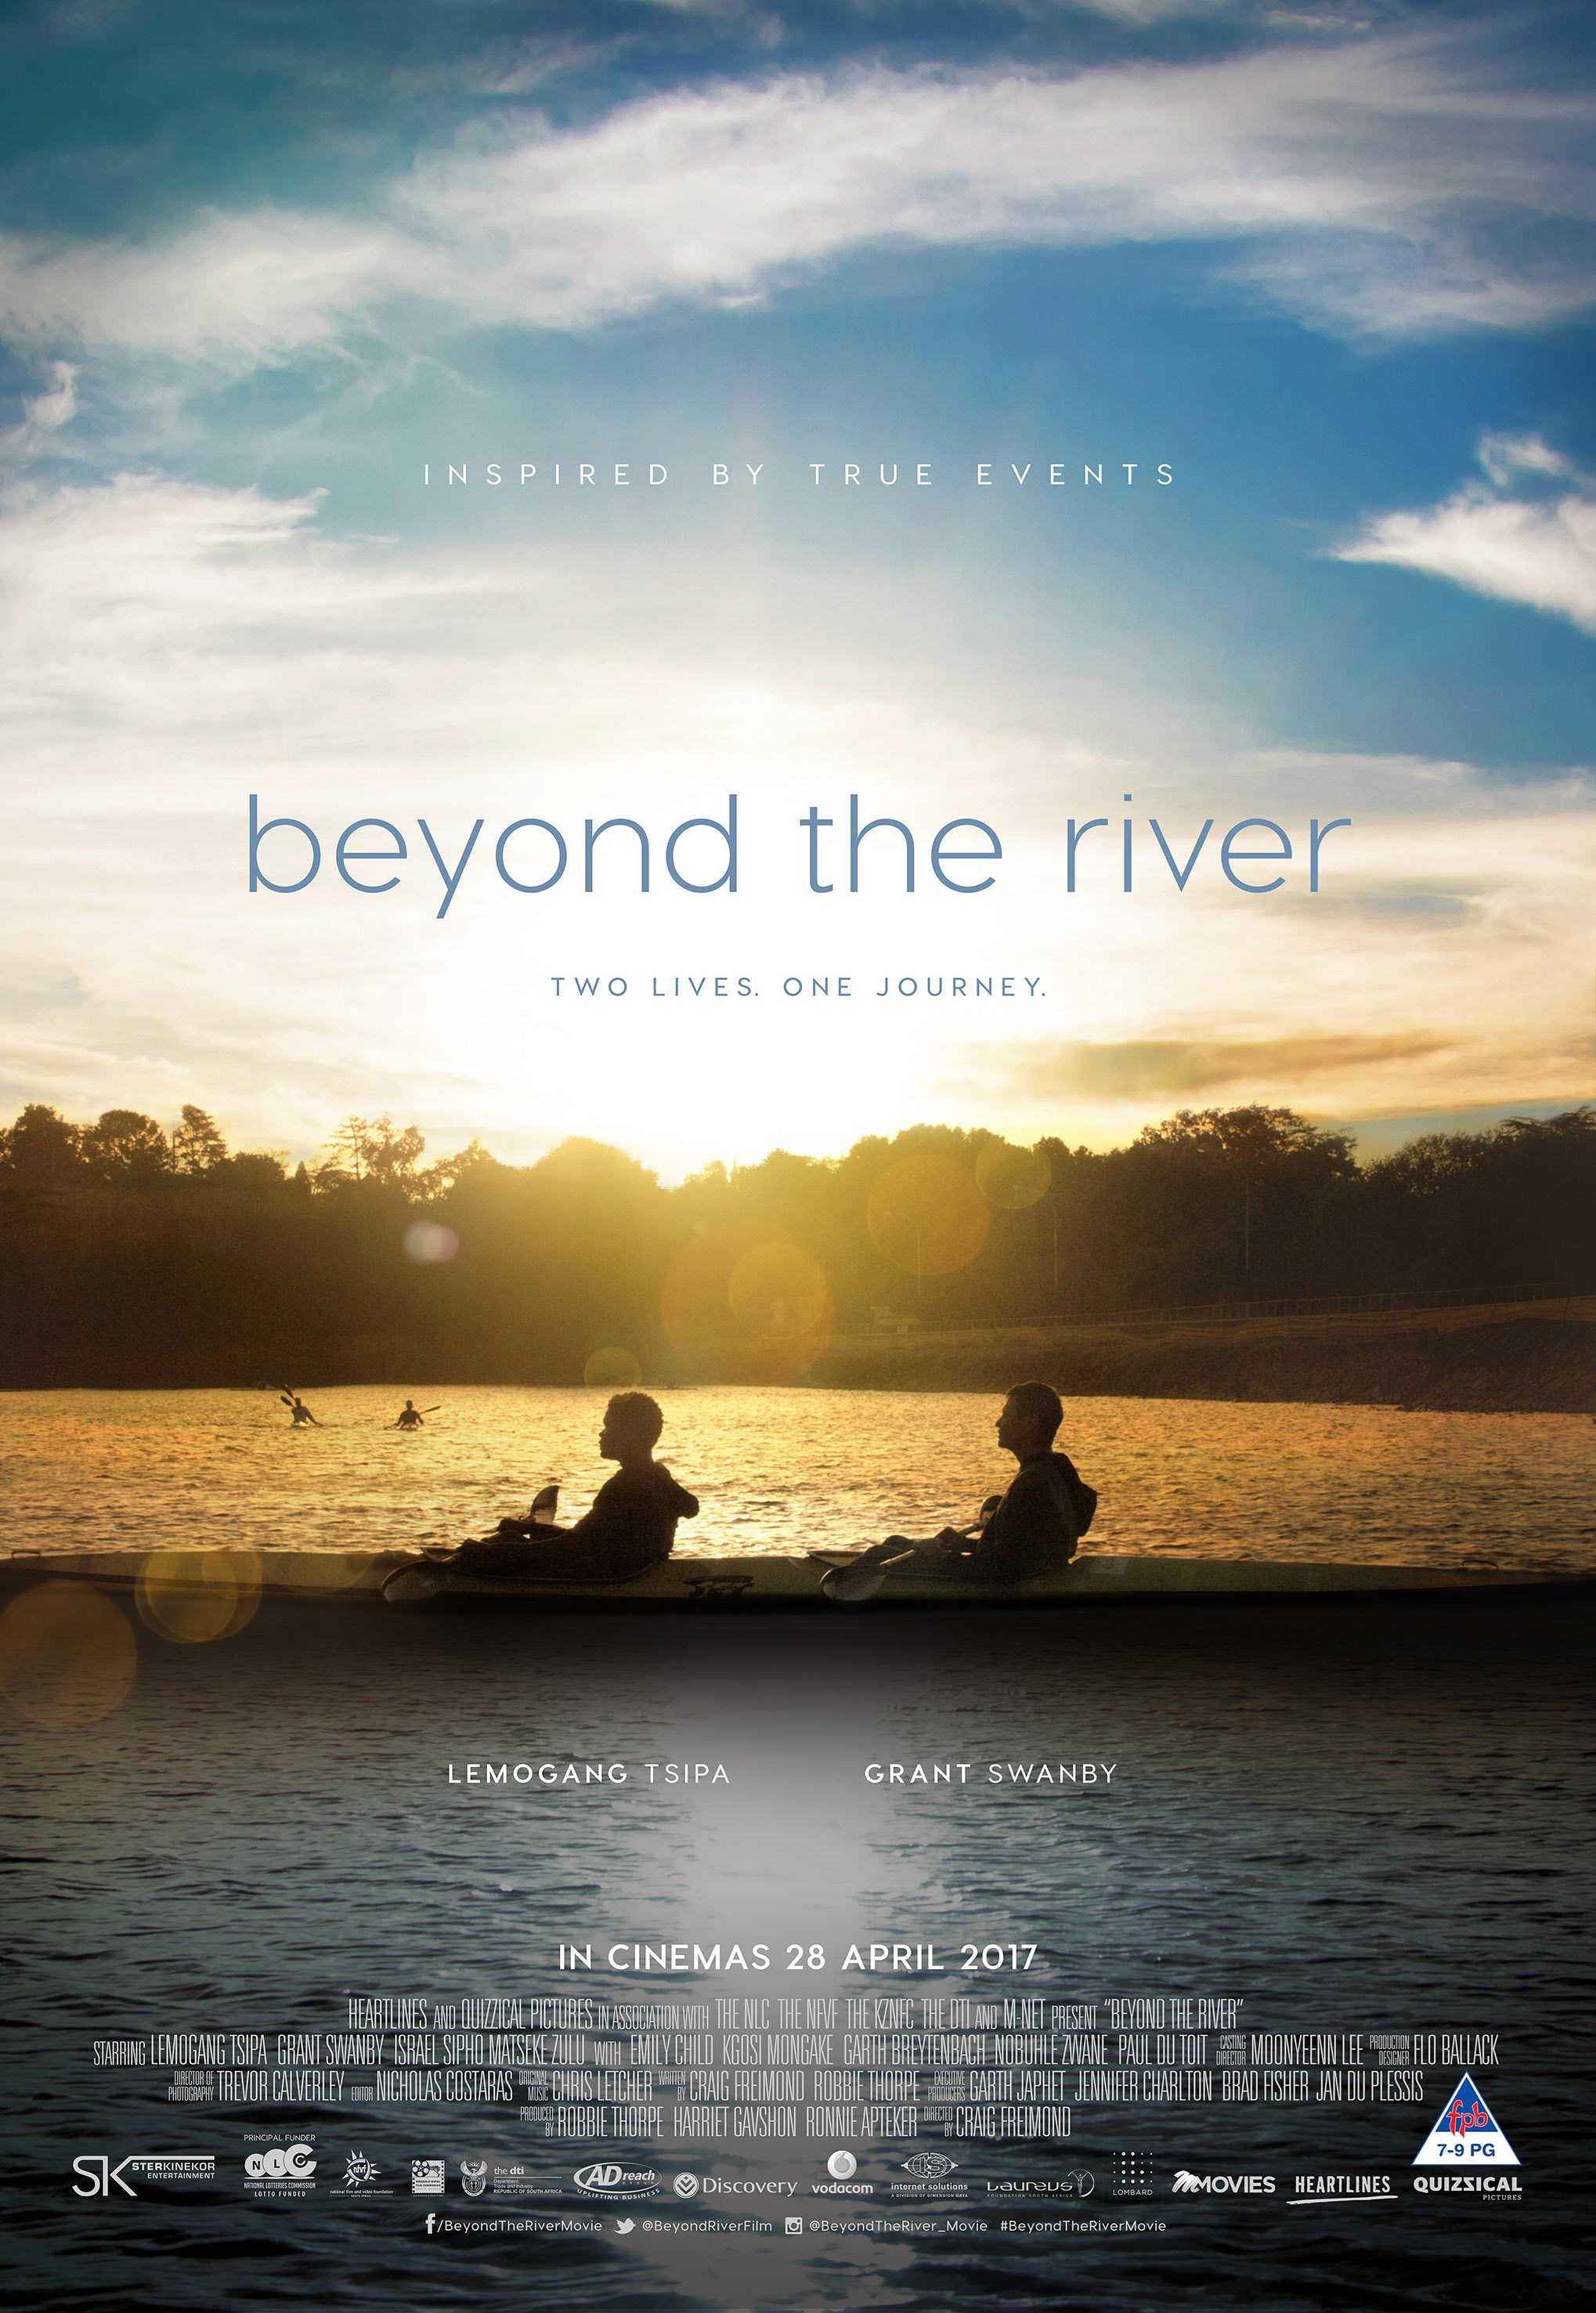 BEYOND THE RIVER Poster